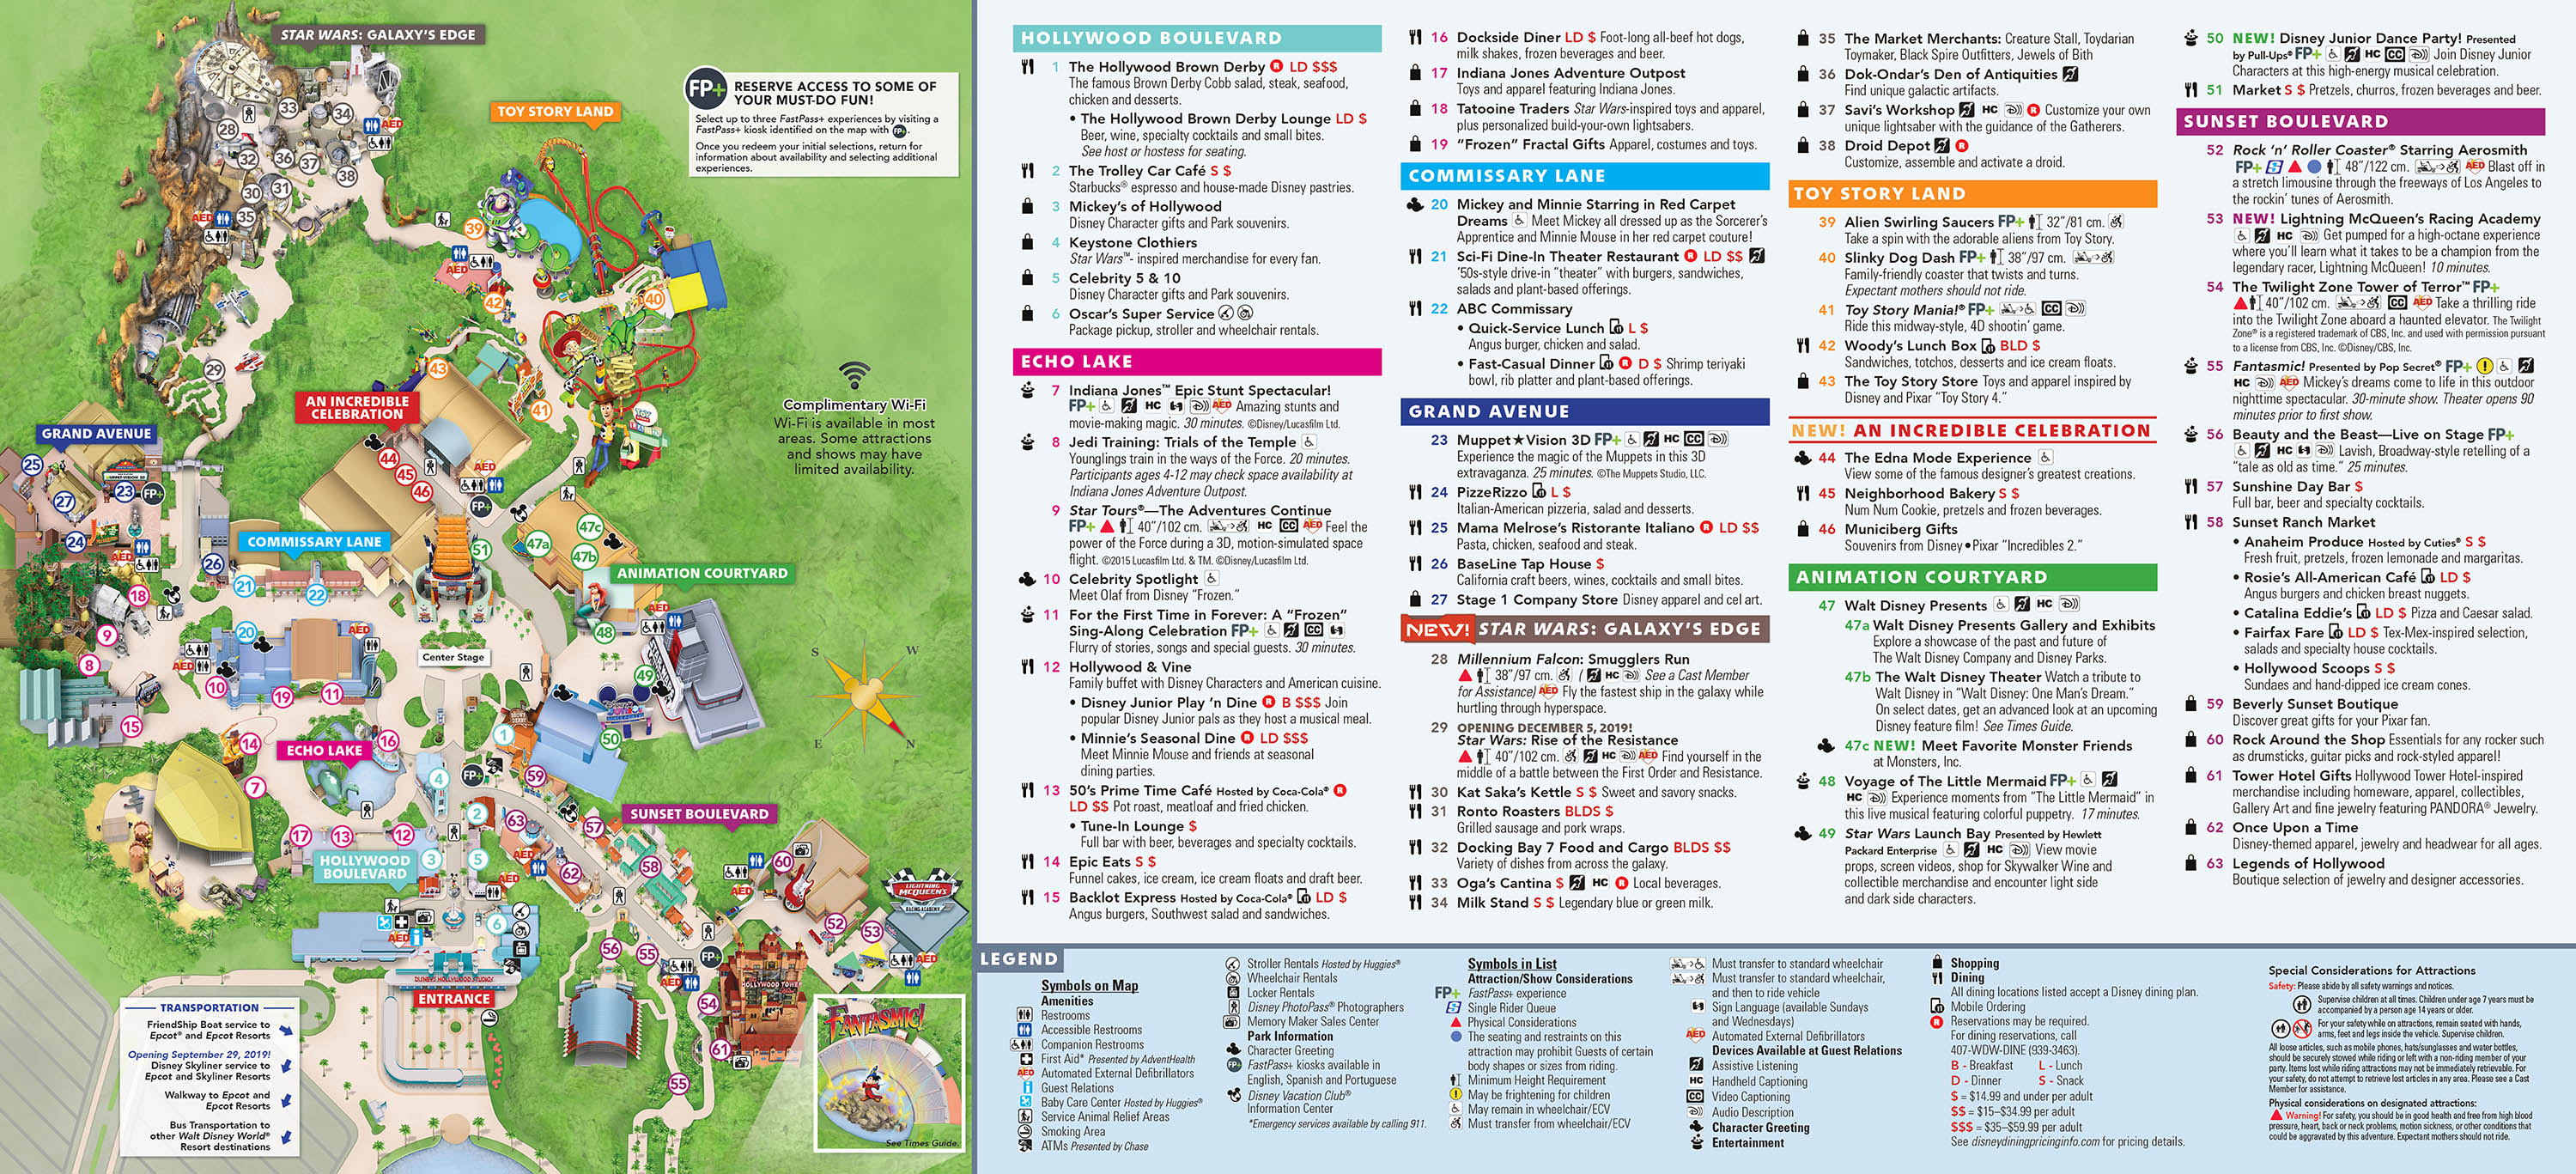 Walt Disney World Park Guide Maps - Blog Mickey on map of last night, map of restrepo, map of first landing, map of sea world san antonio, map of butler chain of lakes, map of arthur, map of universal studios orlando, map of nickelodeon suites resort, map of tammy, map of serenity, map of downtown disney, map of wizarding world of harry potter, map of espn wide world of sports complex, map of epcot, map of the kentucky derby, map of disney world, map of blizzard beach, map of disney village, map of typhoon lagoon, map of hollywood studios,